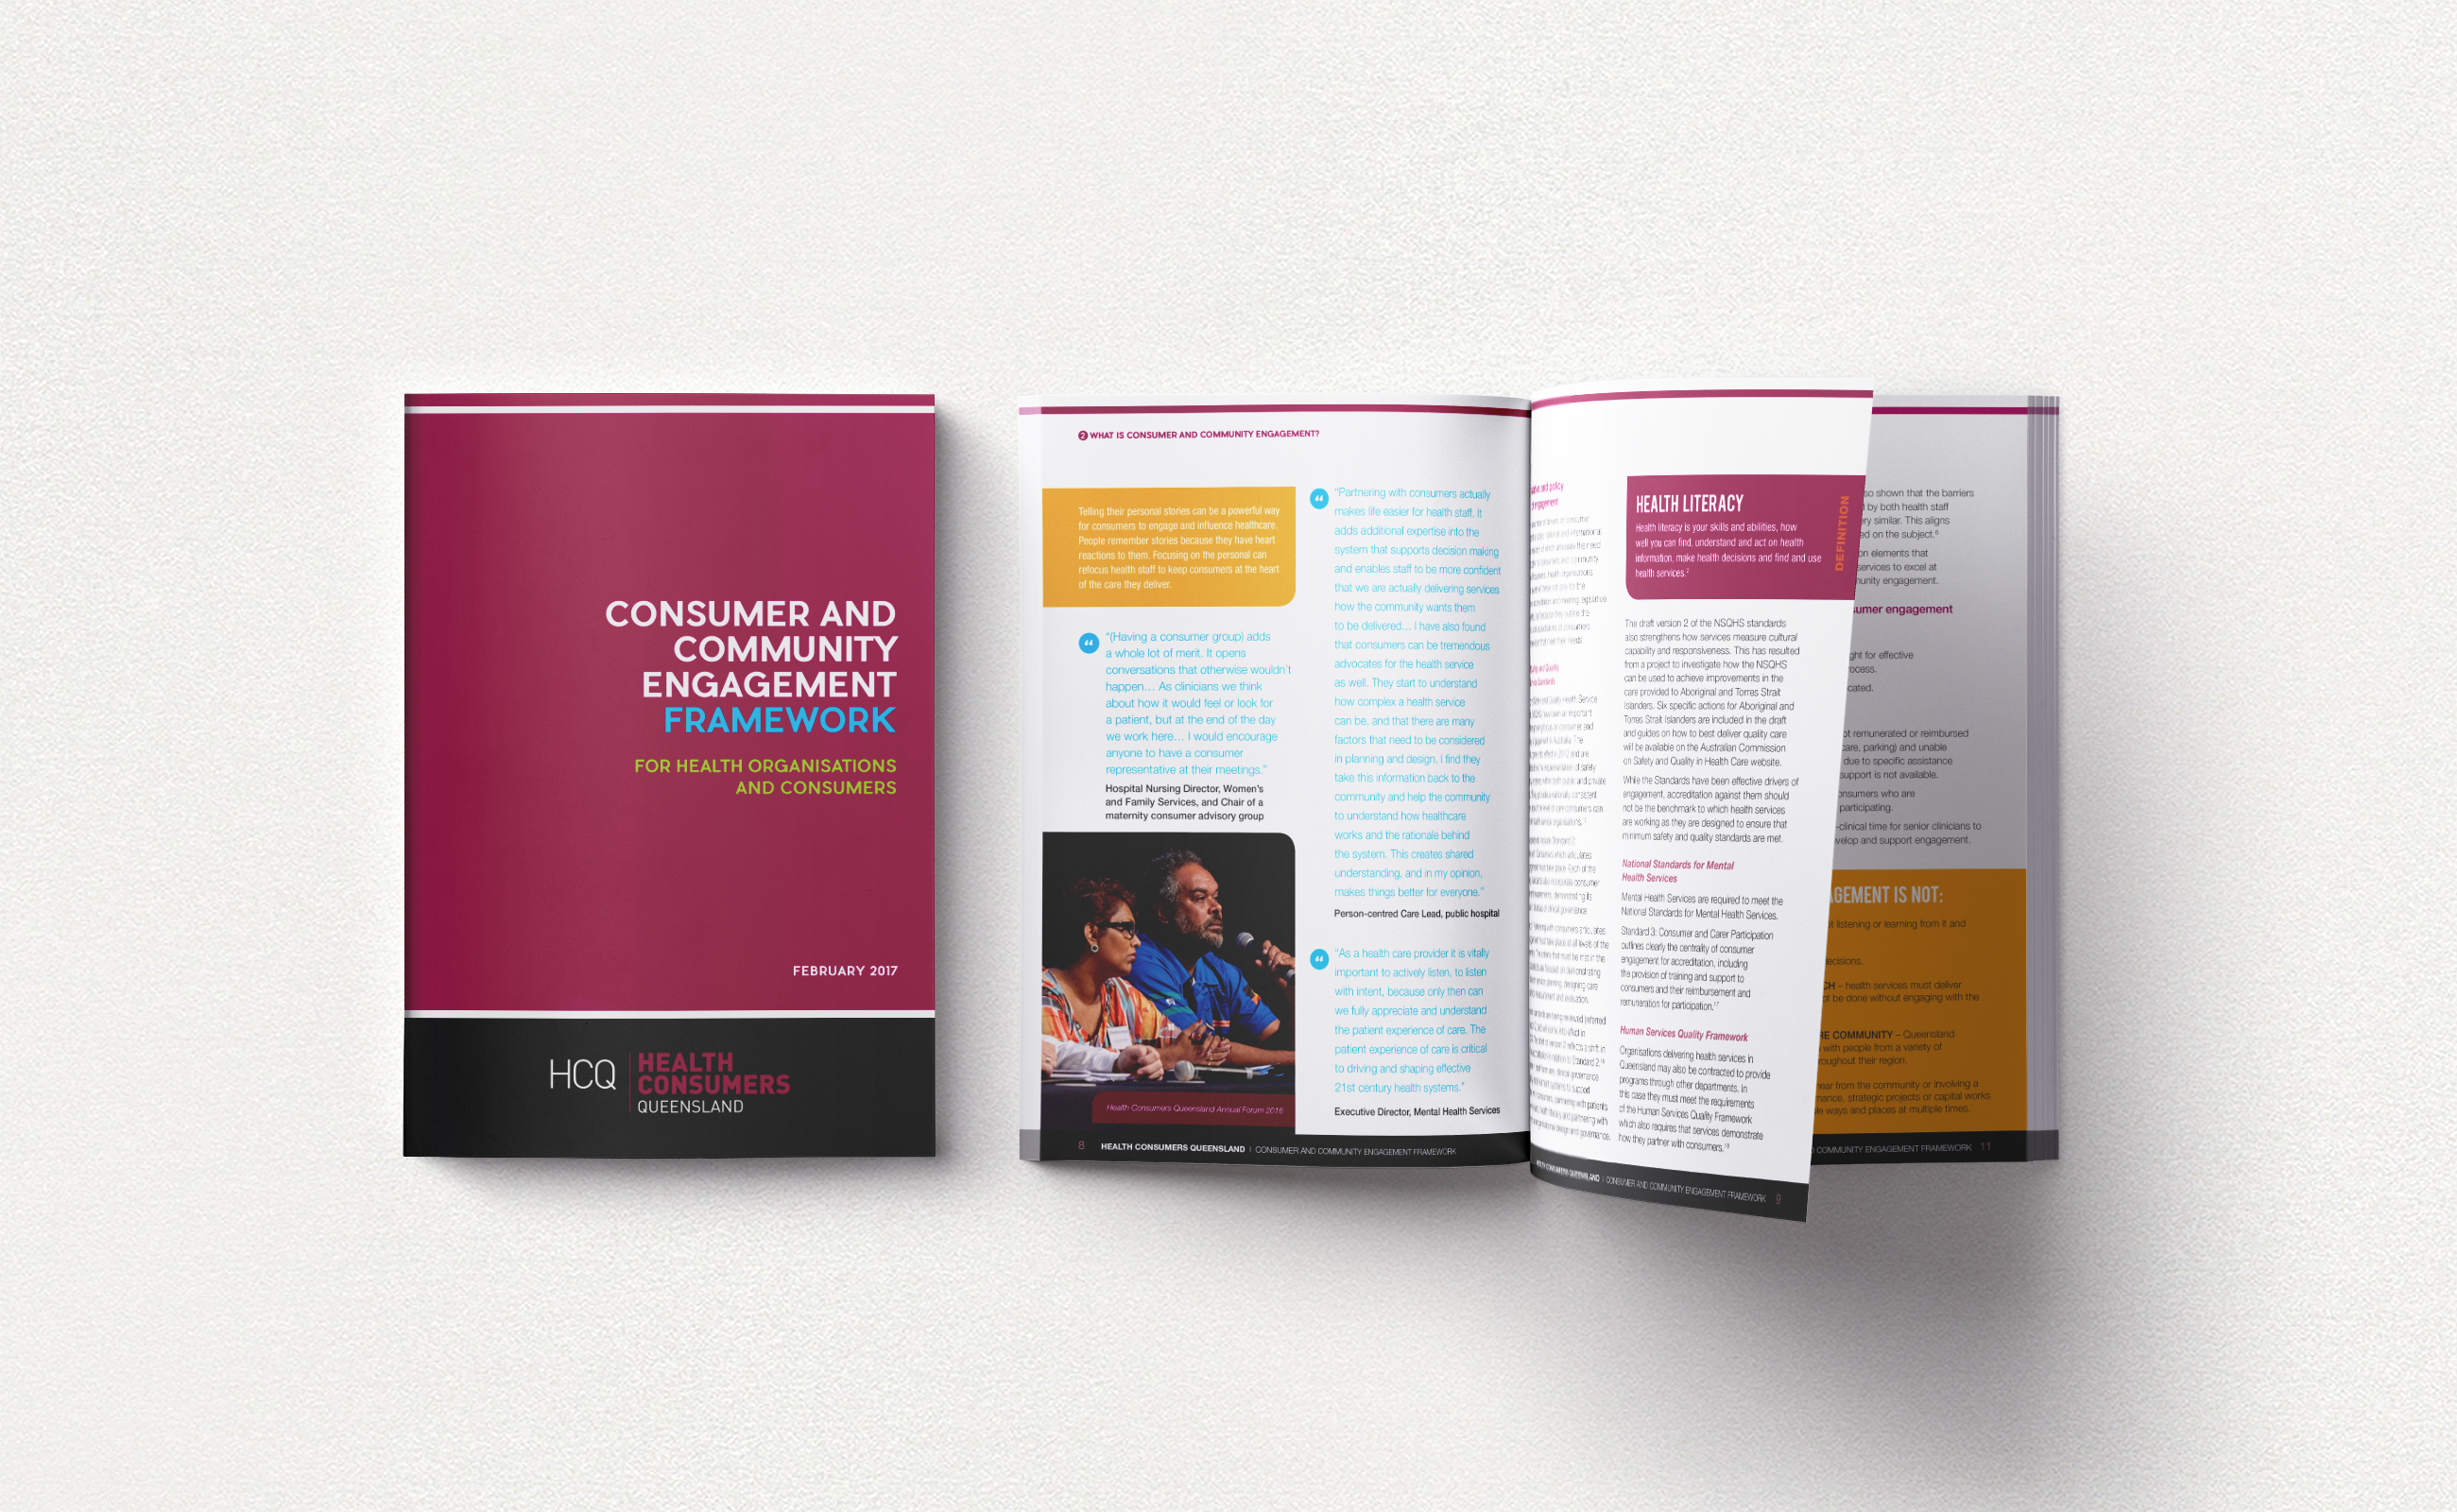 Consumer and Community Engagement Framework, cover and inside